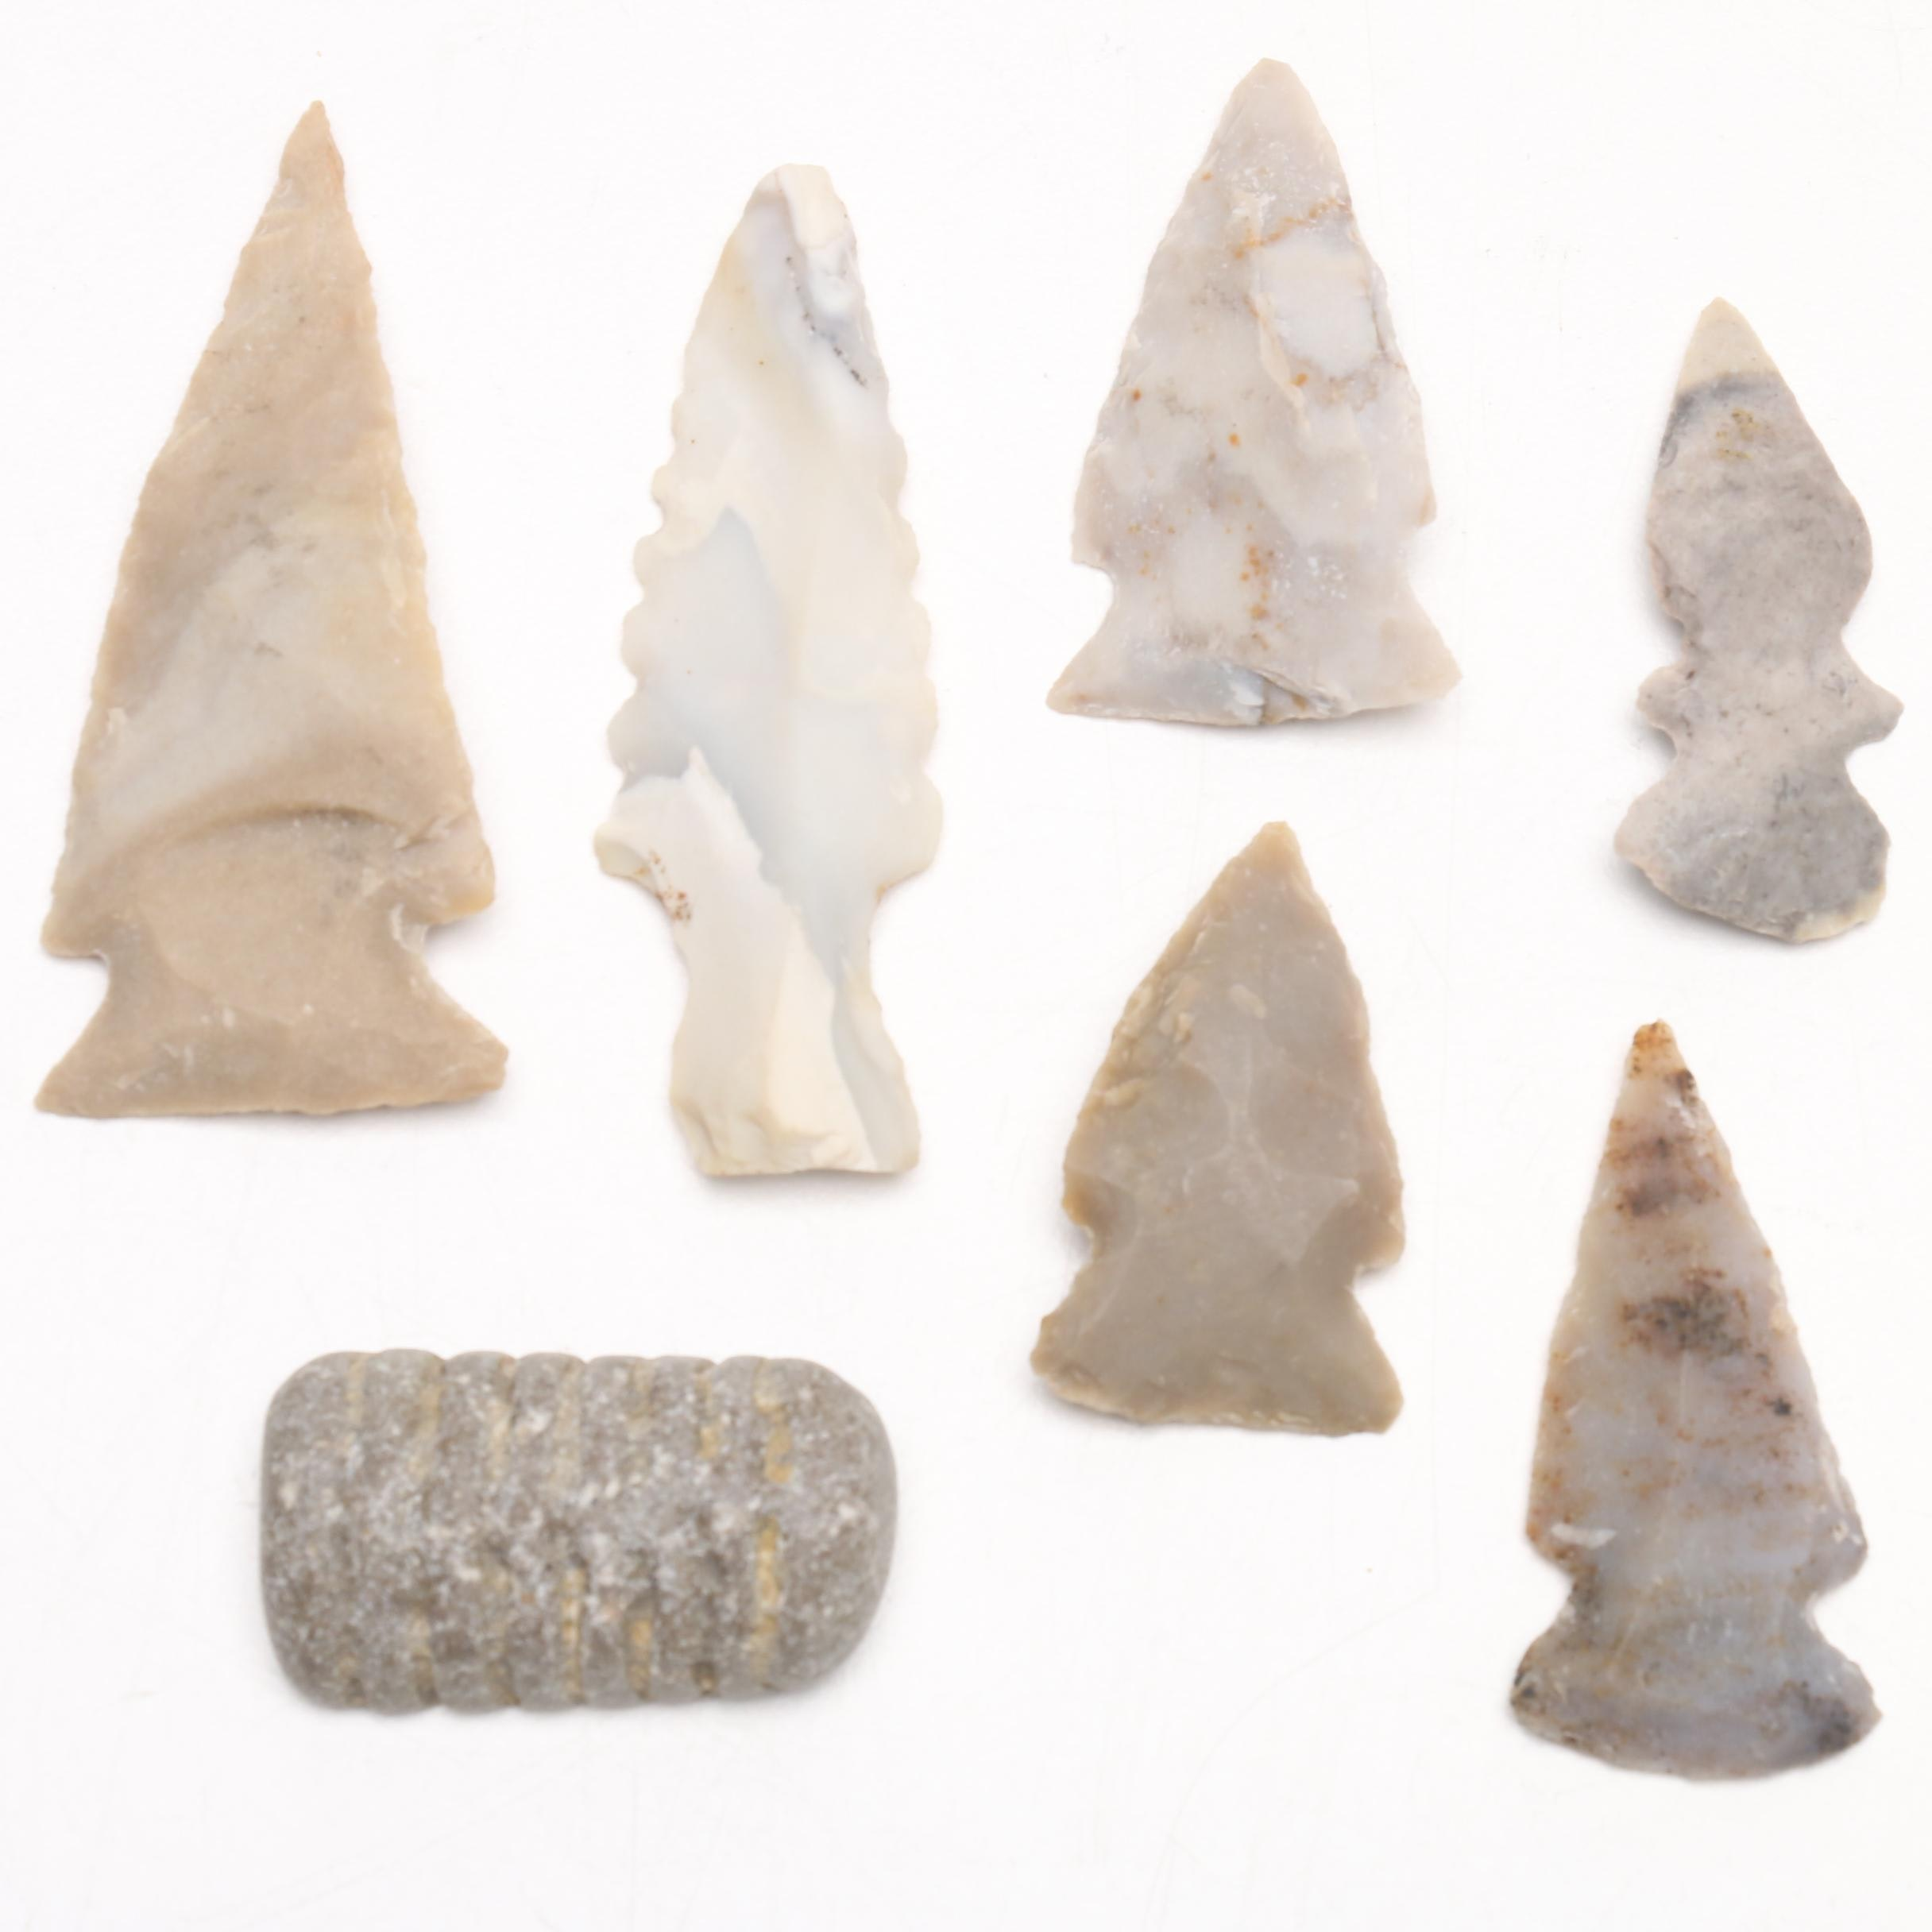 Reproduction Native American Style Projectile Points and Cephalopod Section